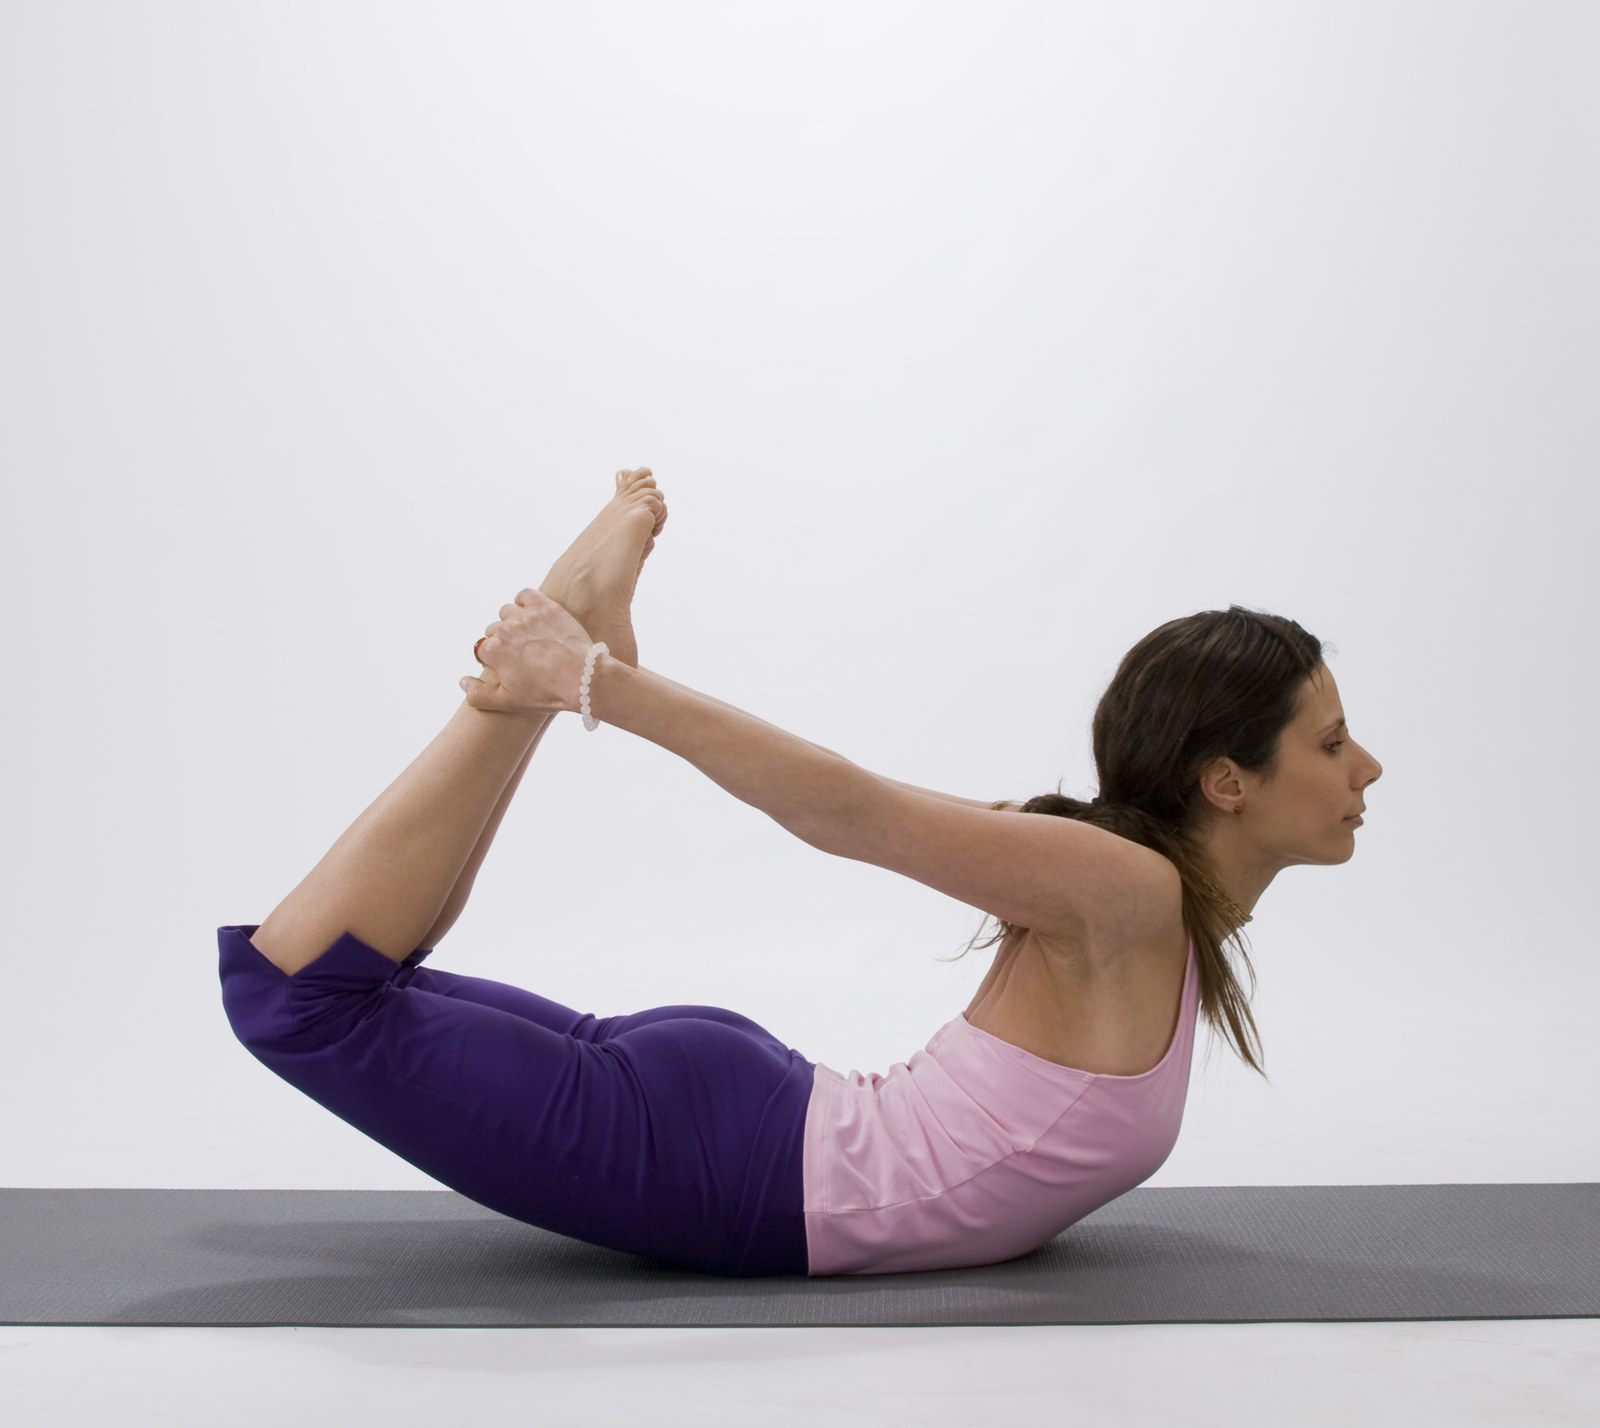 yoga 100 key yoga poses and postures picture book for